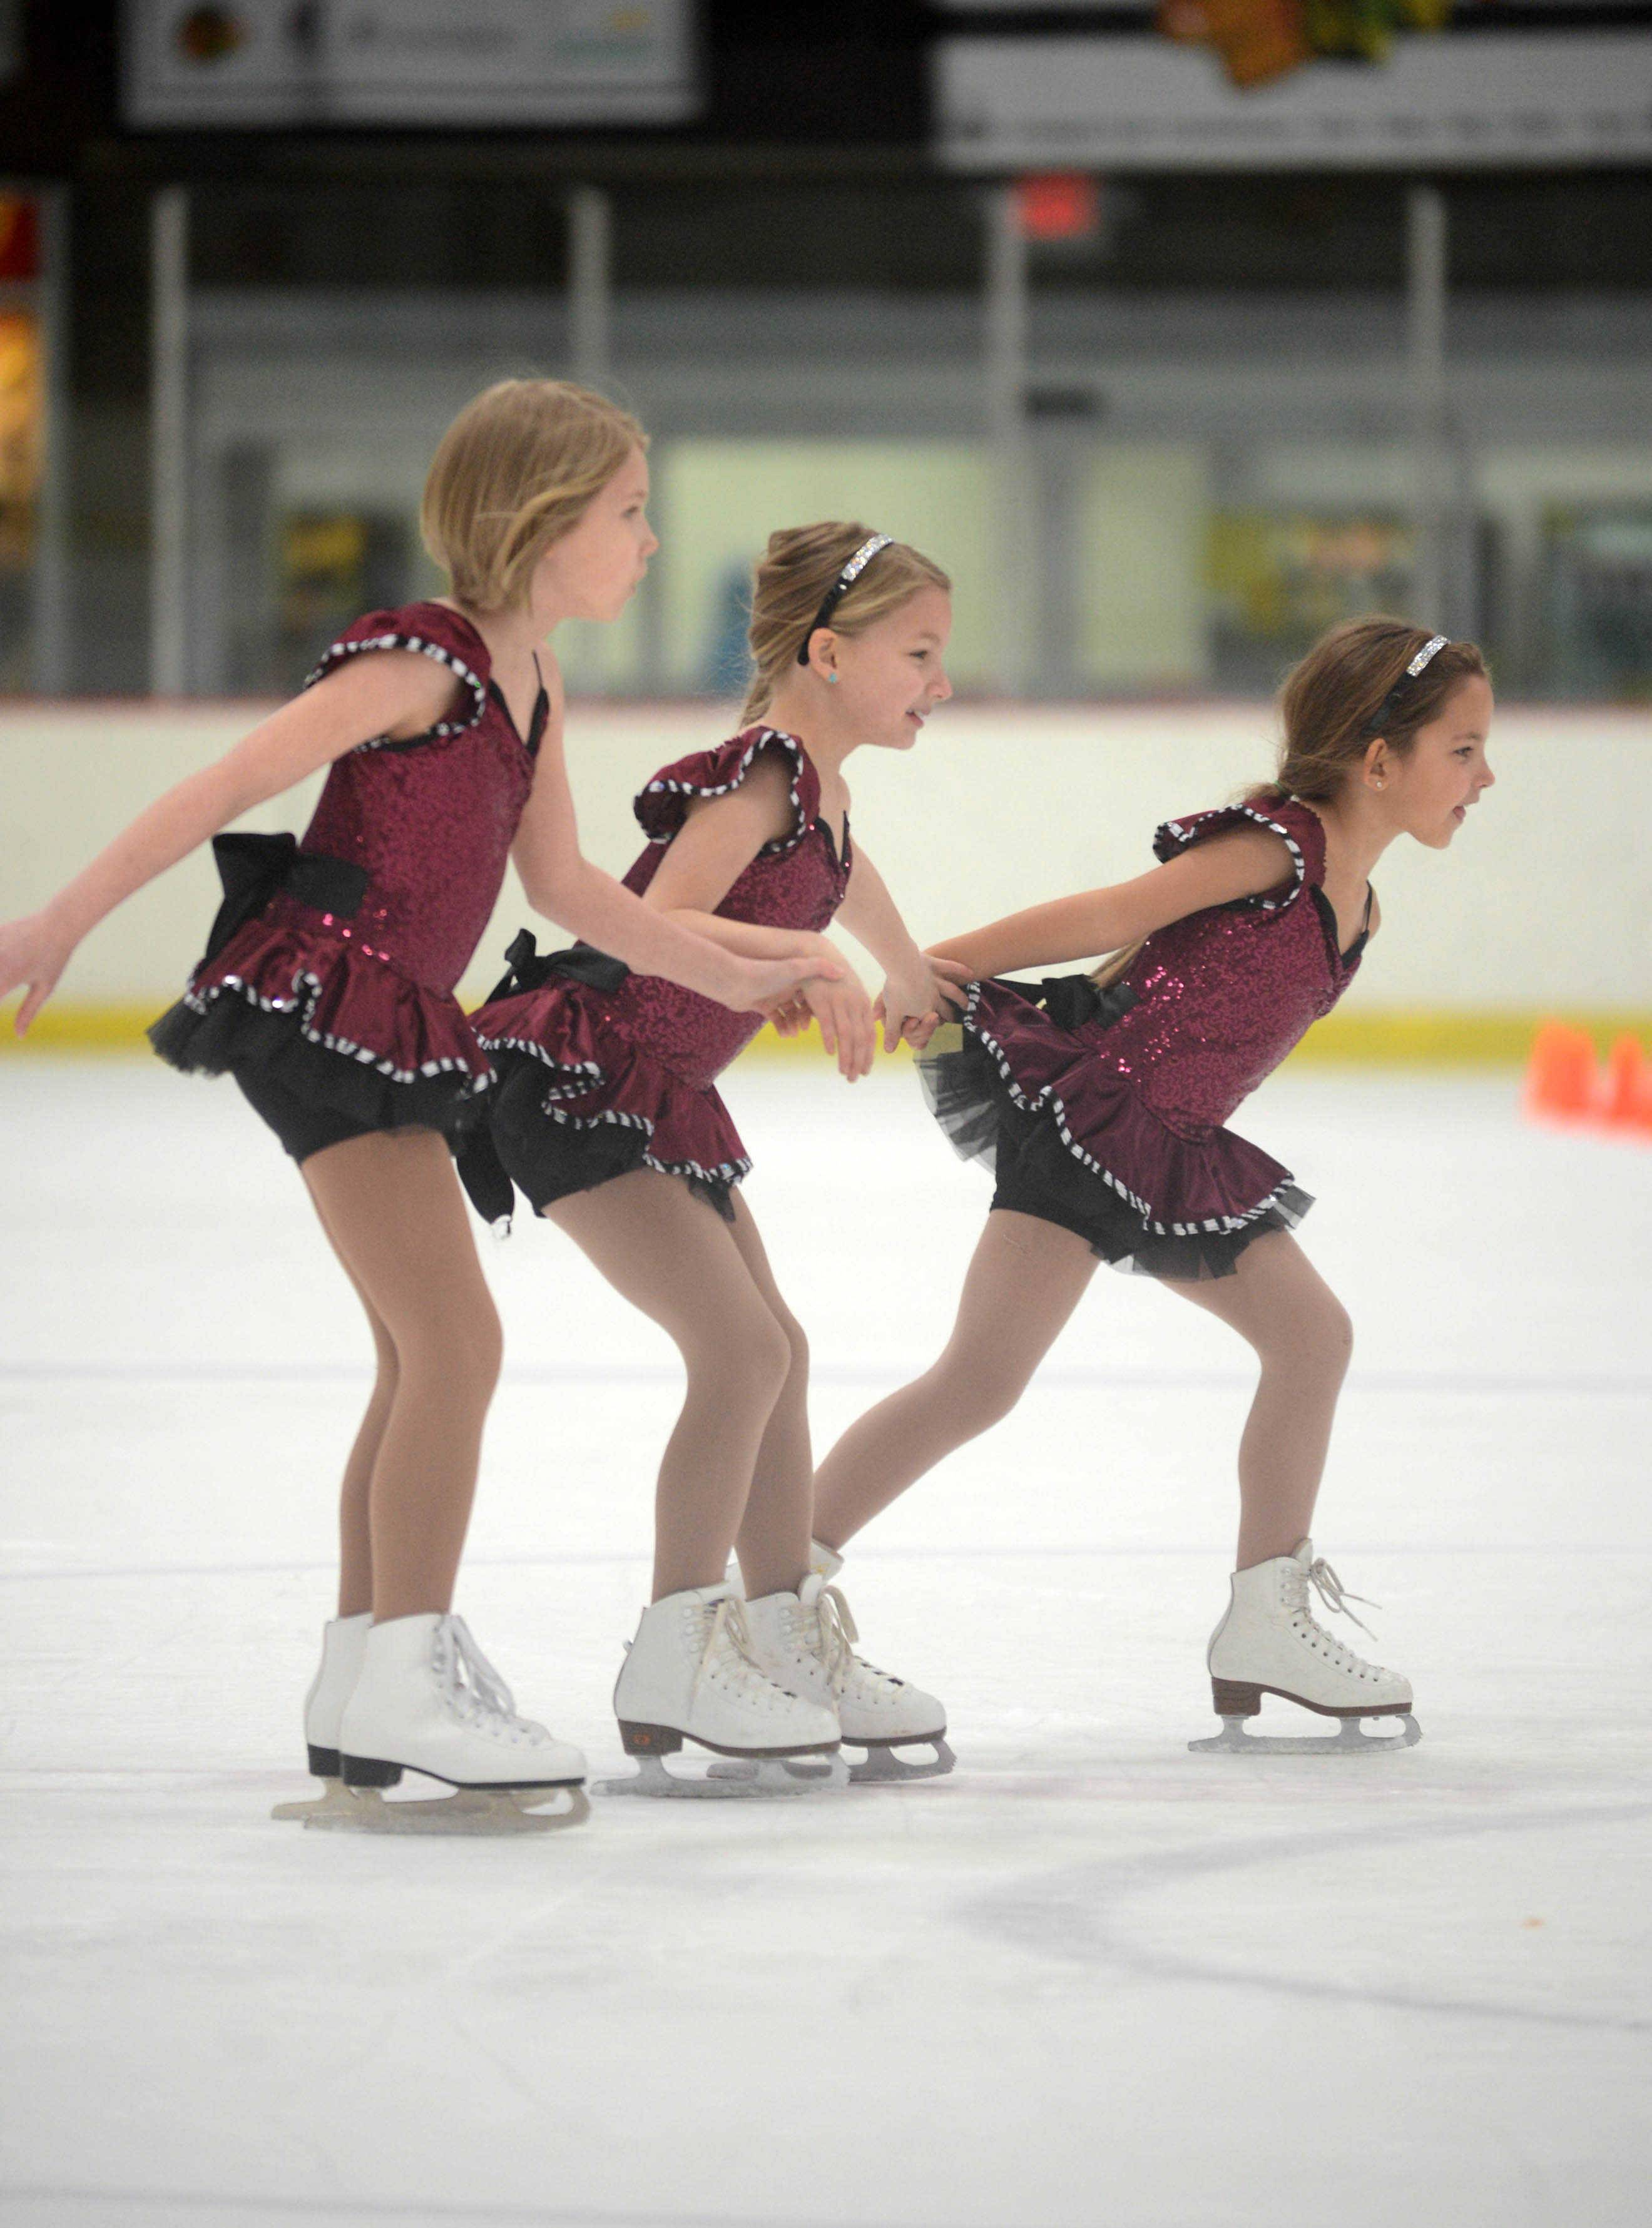 ON THE COVER: From left, Alpha I-level students Anna Wojnicki, 9, of Mount Prospect, Lena Heather, 8, of Chicago, and Ava Melnick-Karas, 8, of Morton Grove participate during rehearsal at the Oakton Ice Arena for the upcoming Oakton Ice Show.